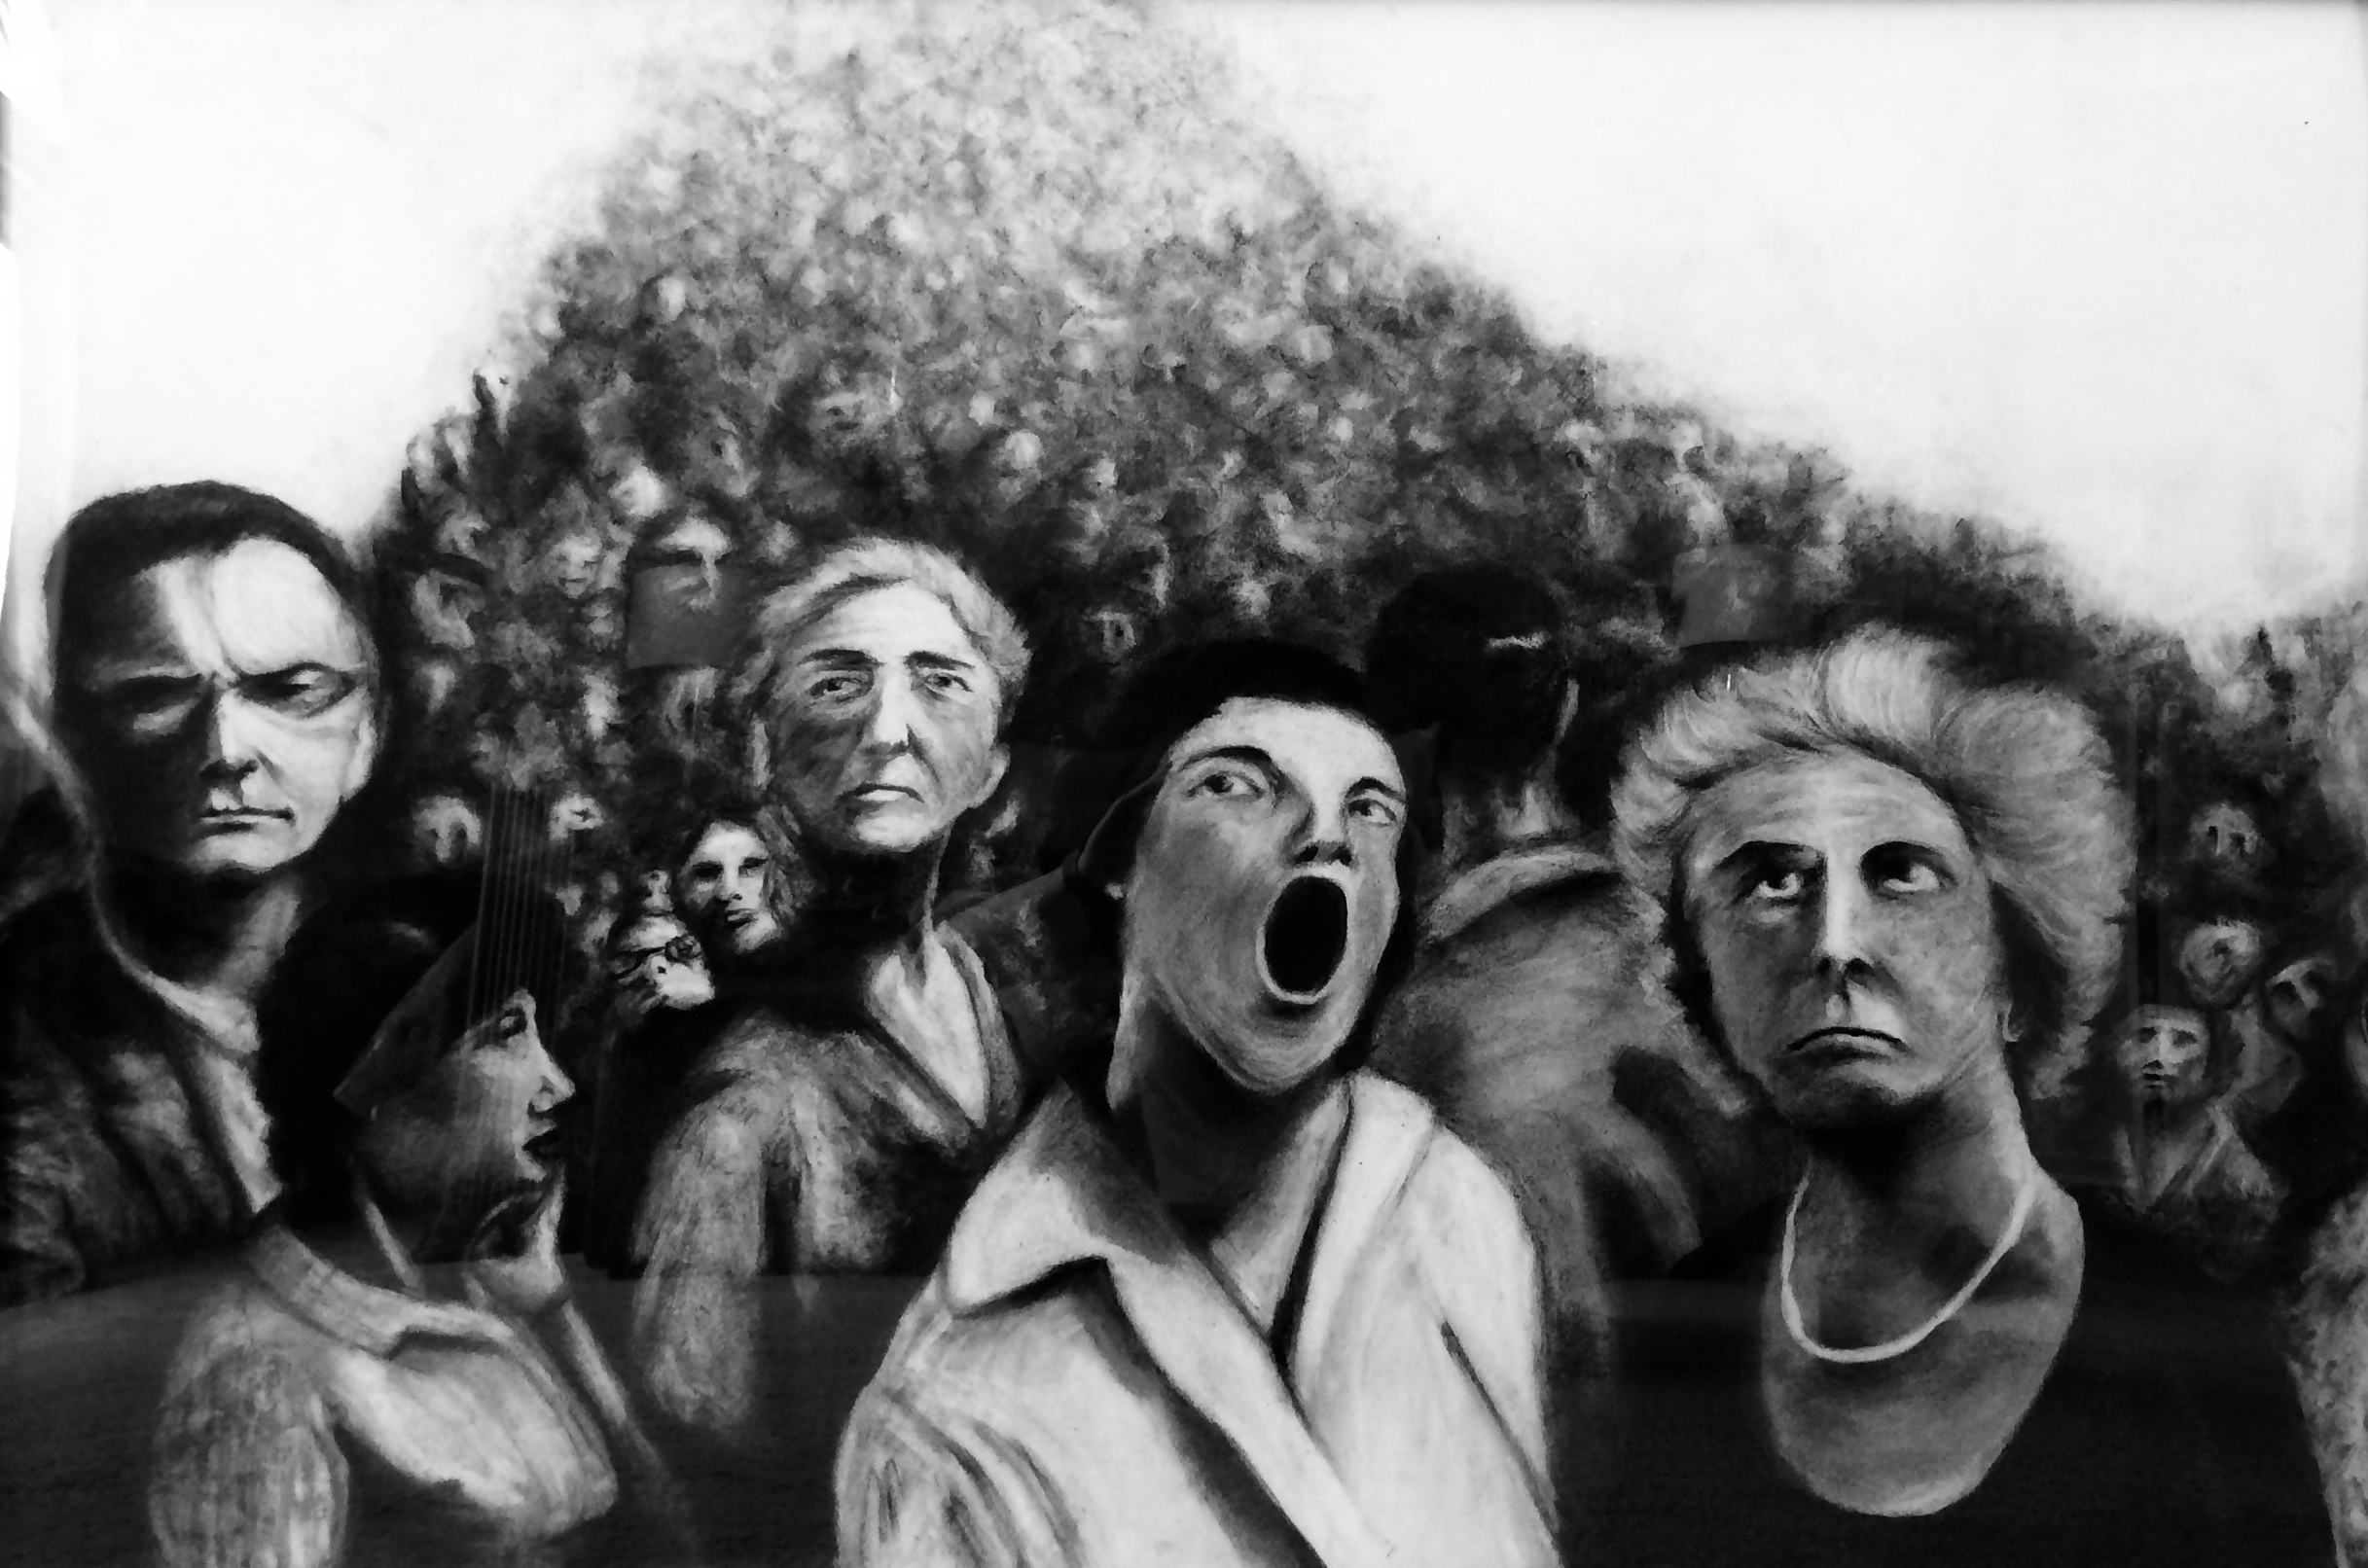 The Value of Skepticism (2012) 3' x 4' charcoal on paper